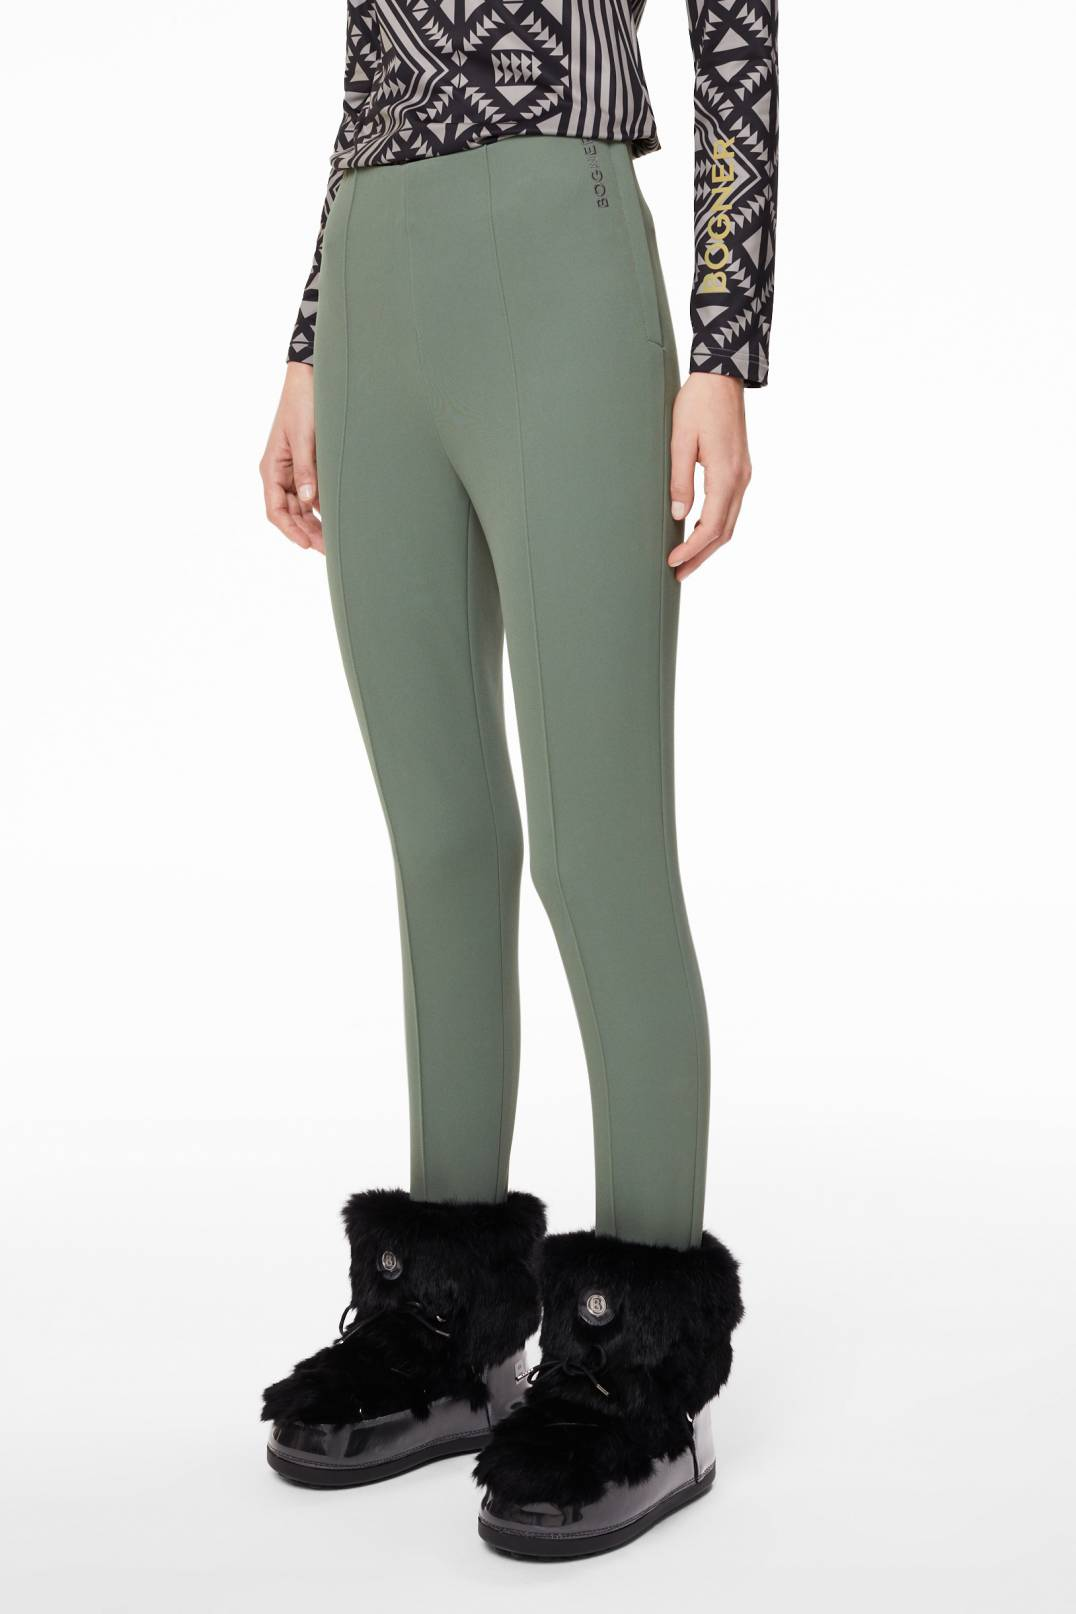 8d75c5feb50ff Bogner Sport Elaine Stirrup trousers in Olive green for Women ...